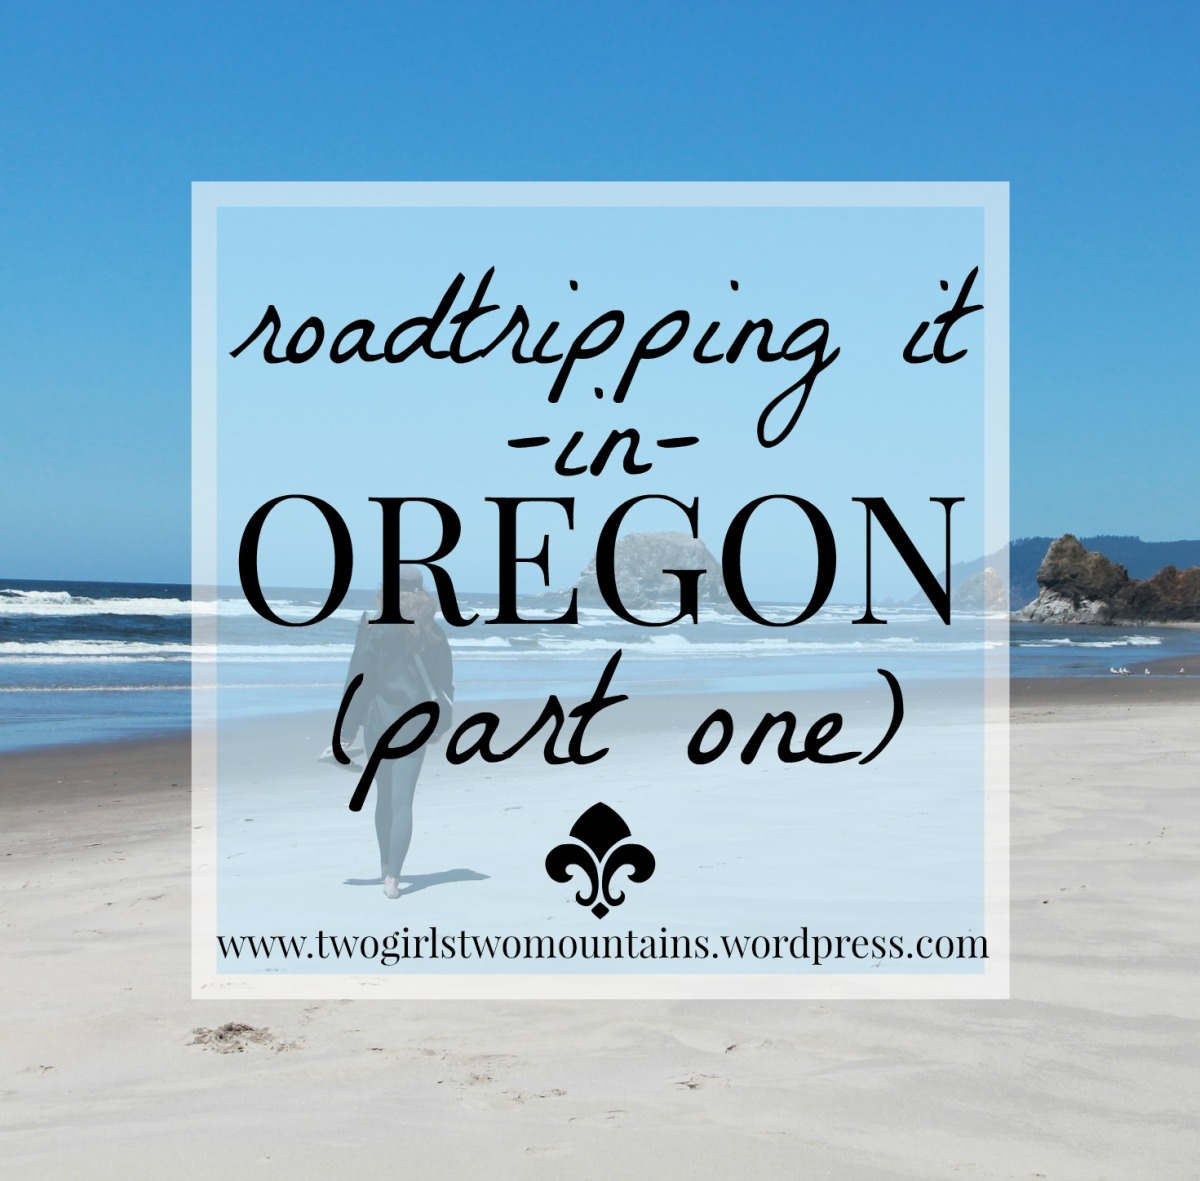 roadtripping it: OREGON, part 1